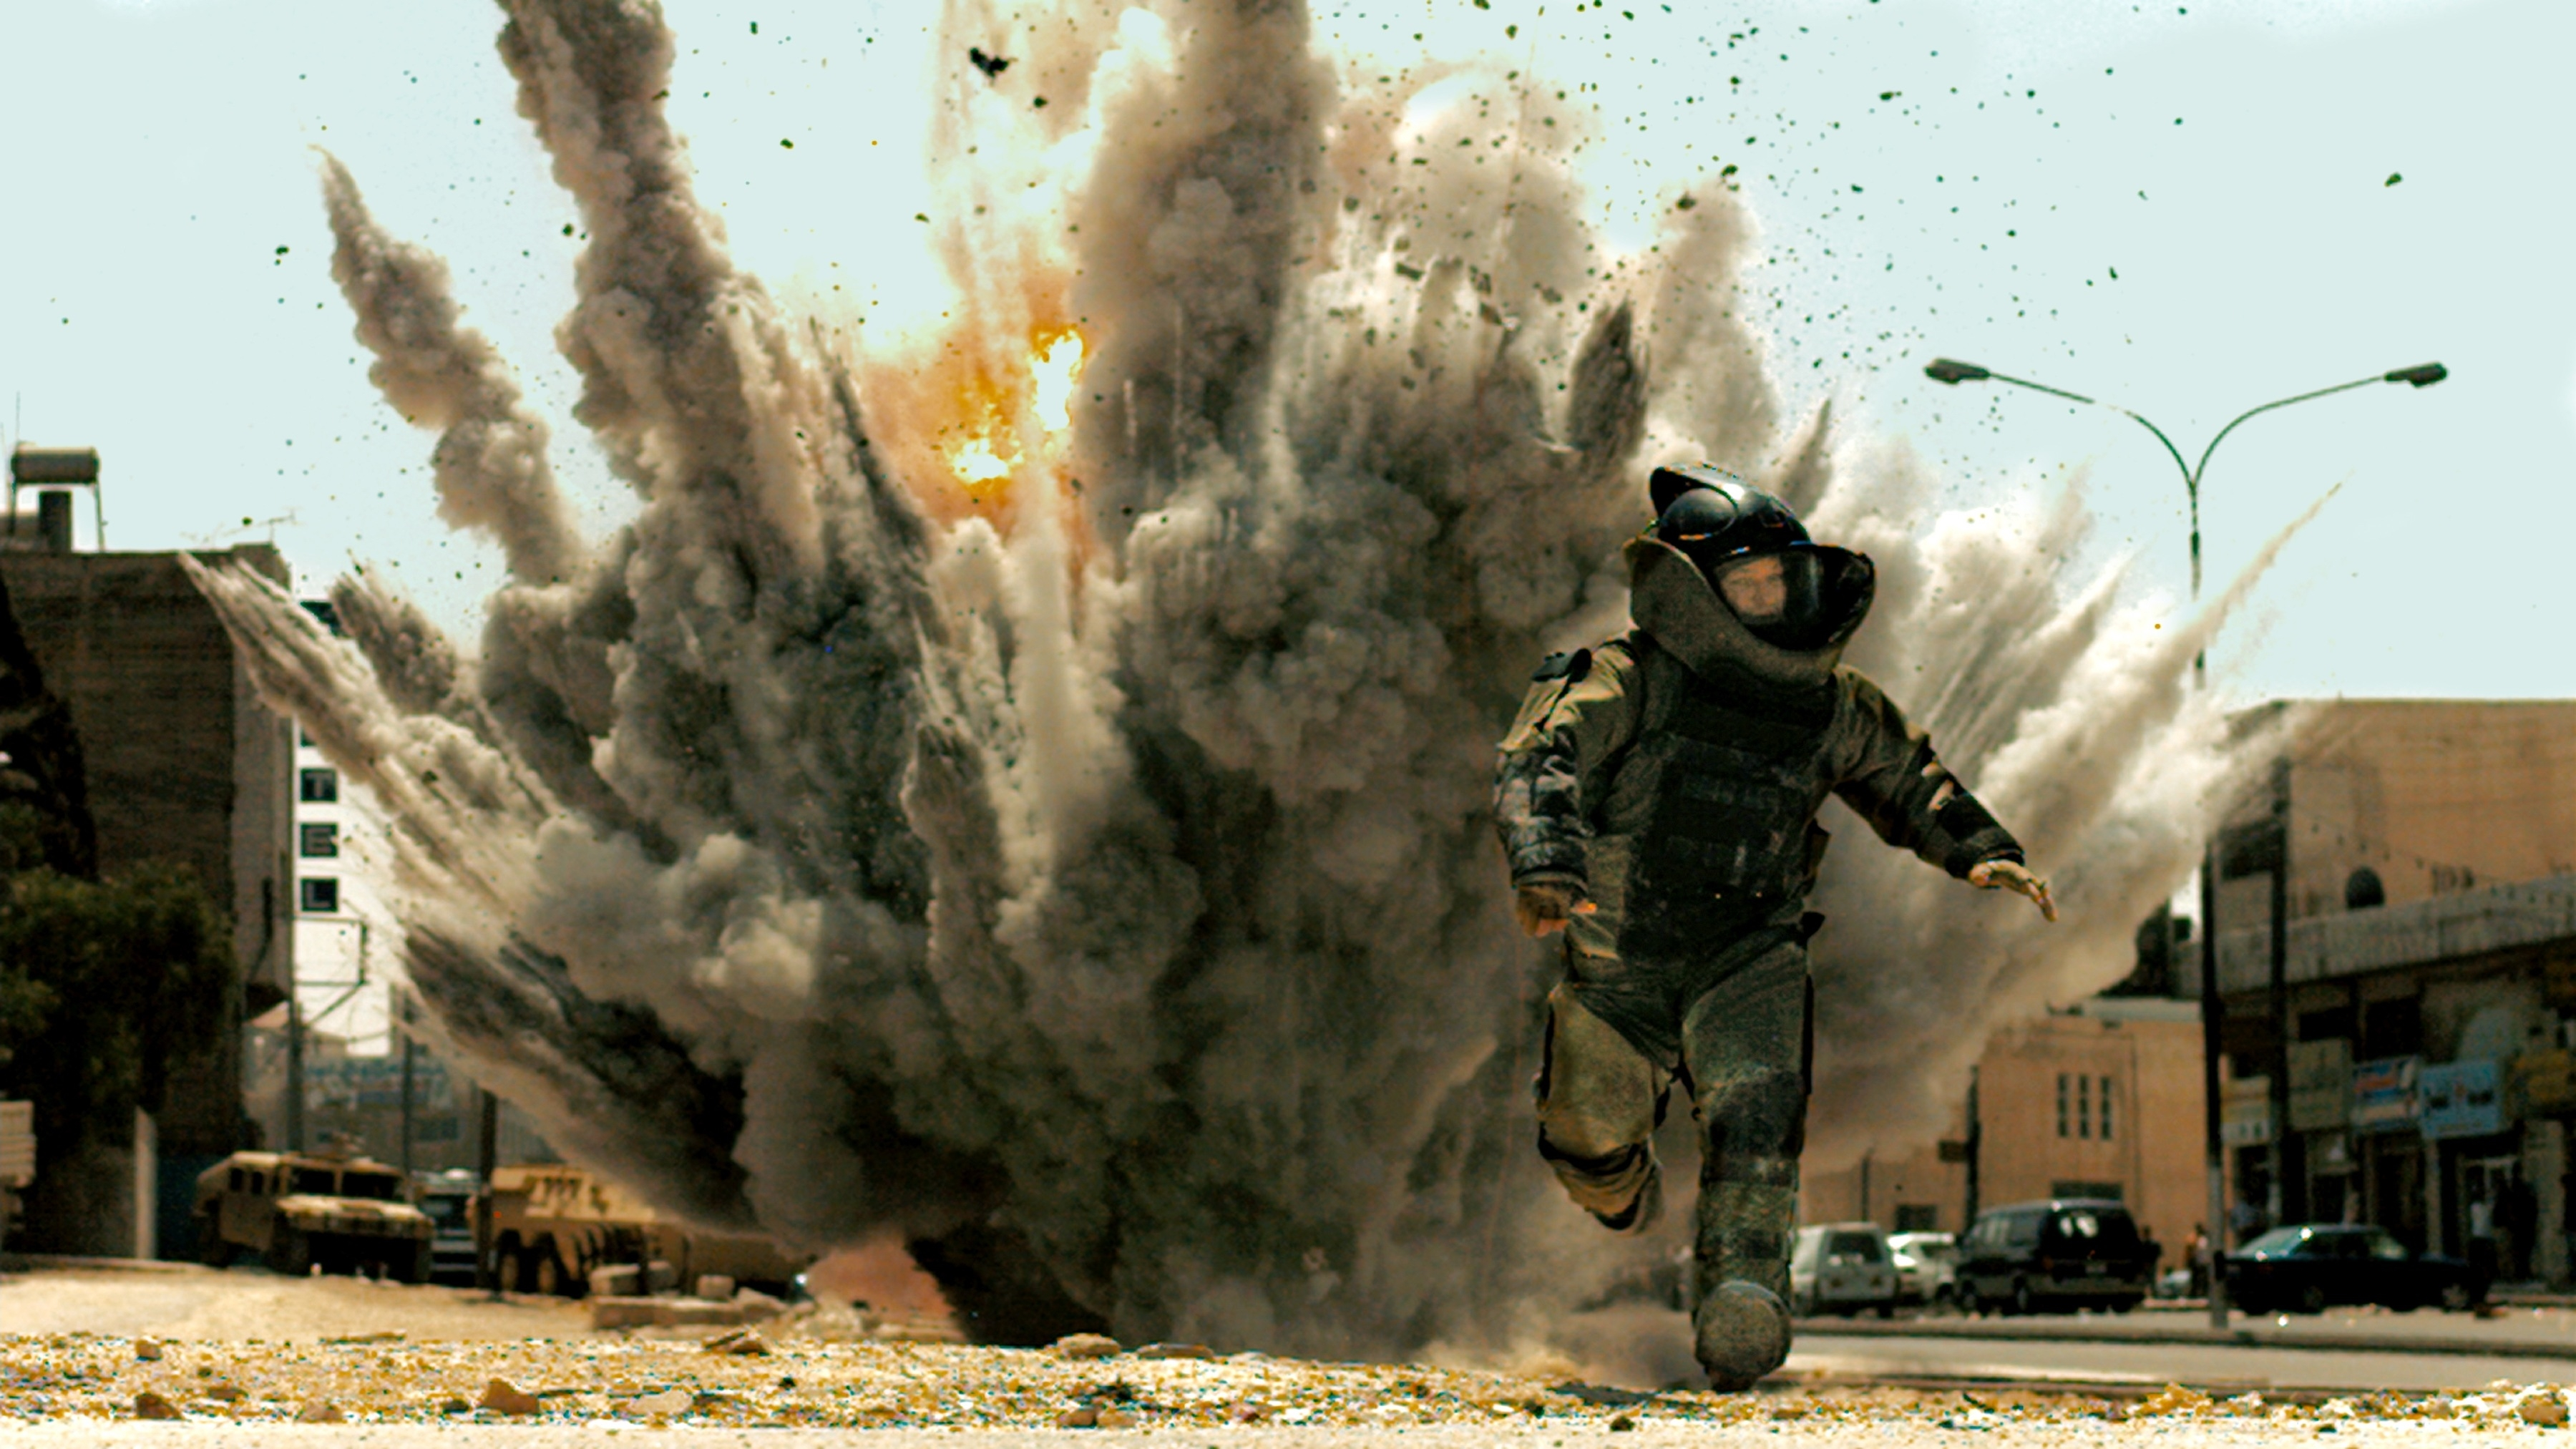 As I was writing this, The Hurt Locker was picking up six BAFTAs